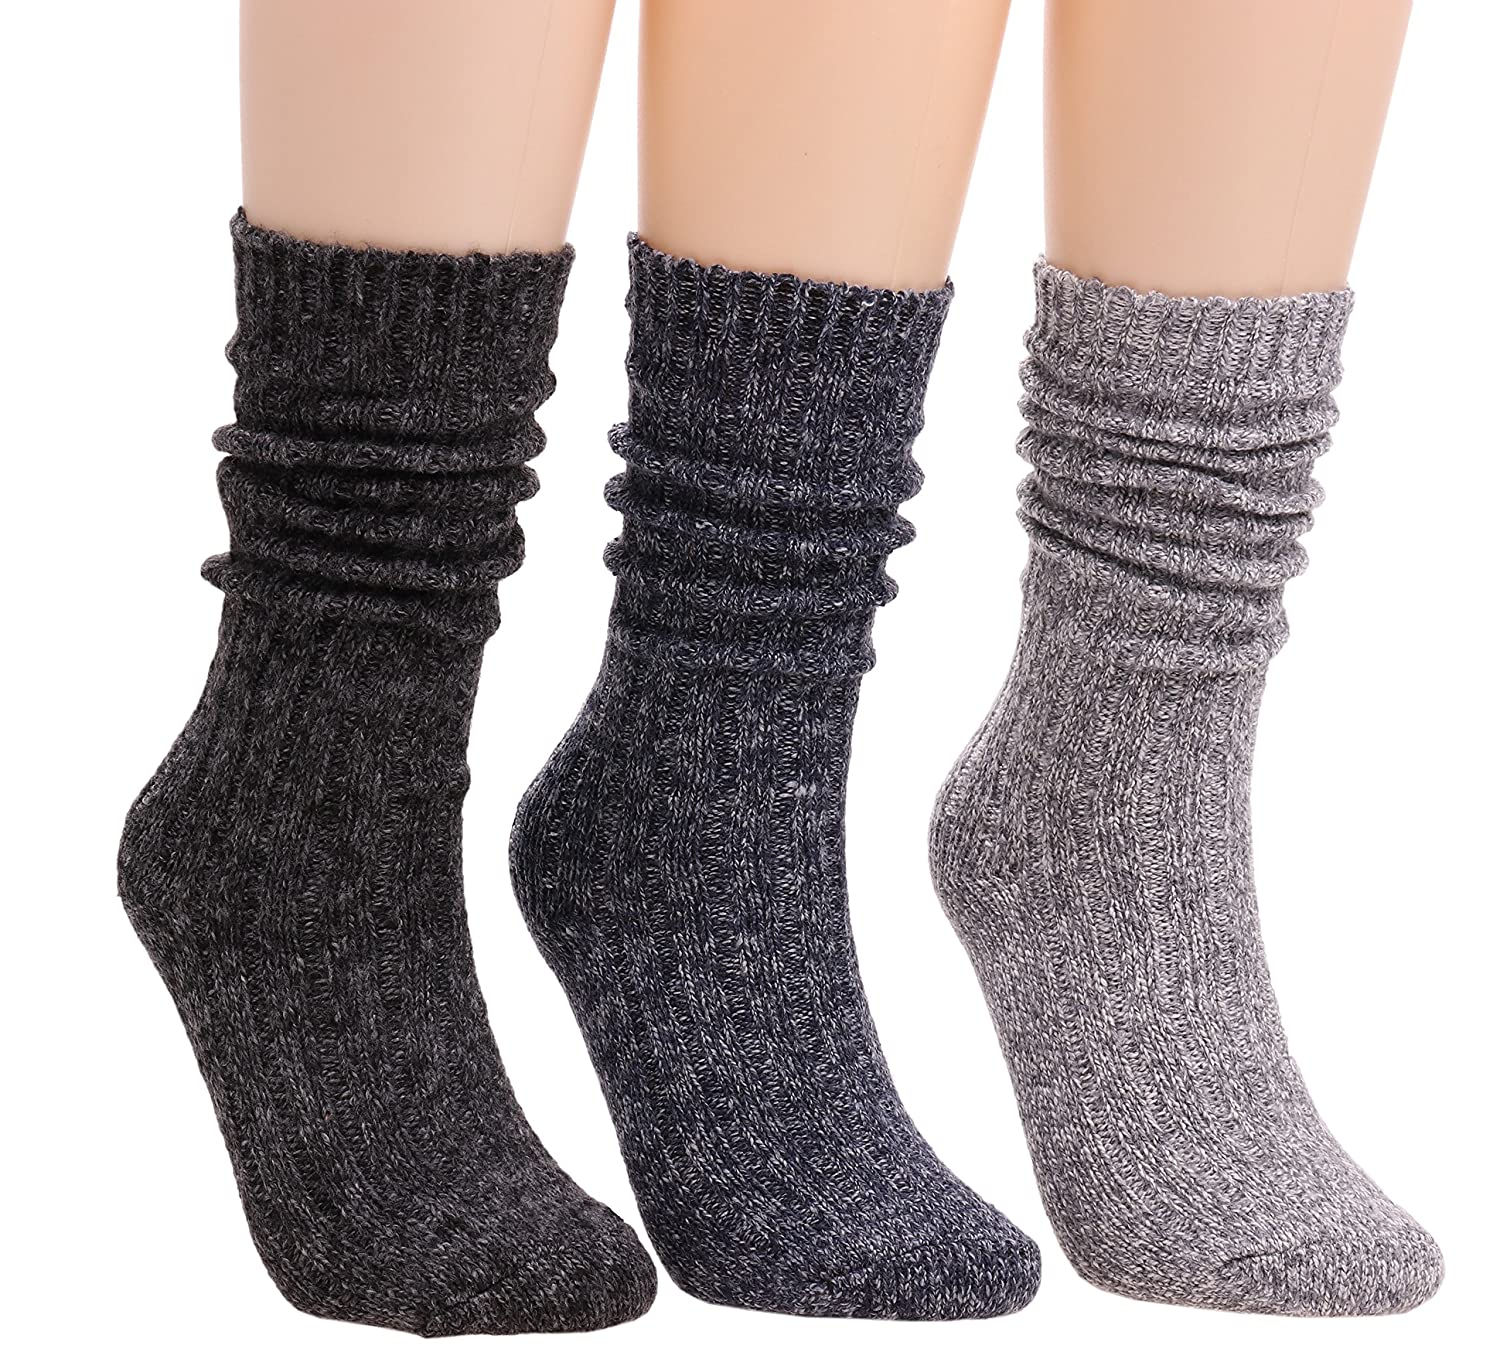 Womens 3 Pairs Casual Vintage Knit Warm Cotton Boot Crew Socks 5-9 WS65 #WS65 Mixed